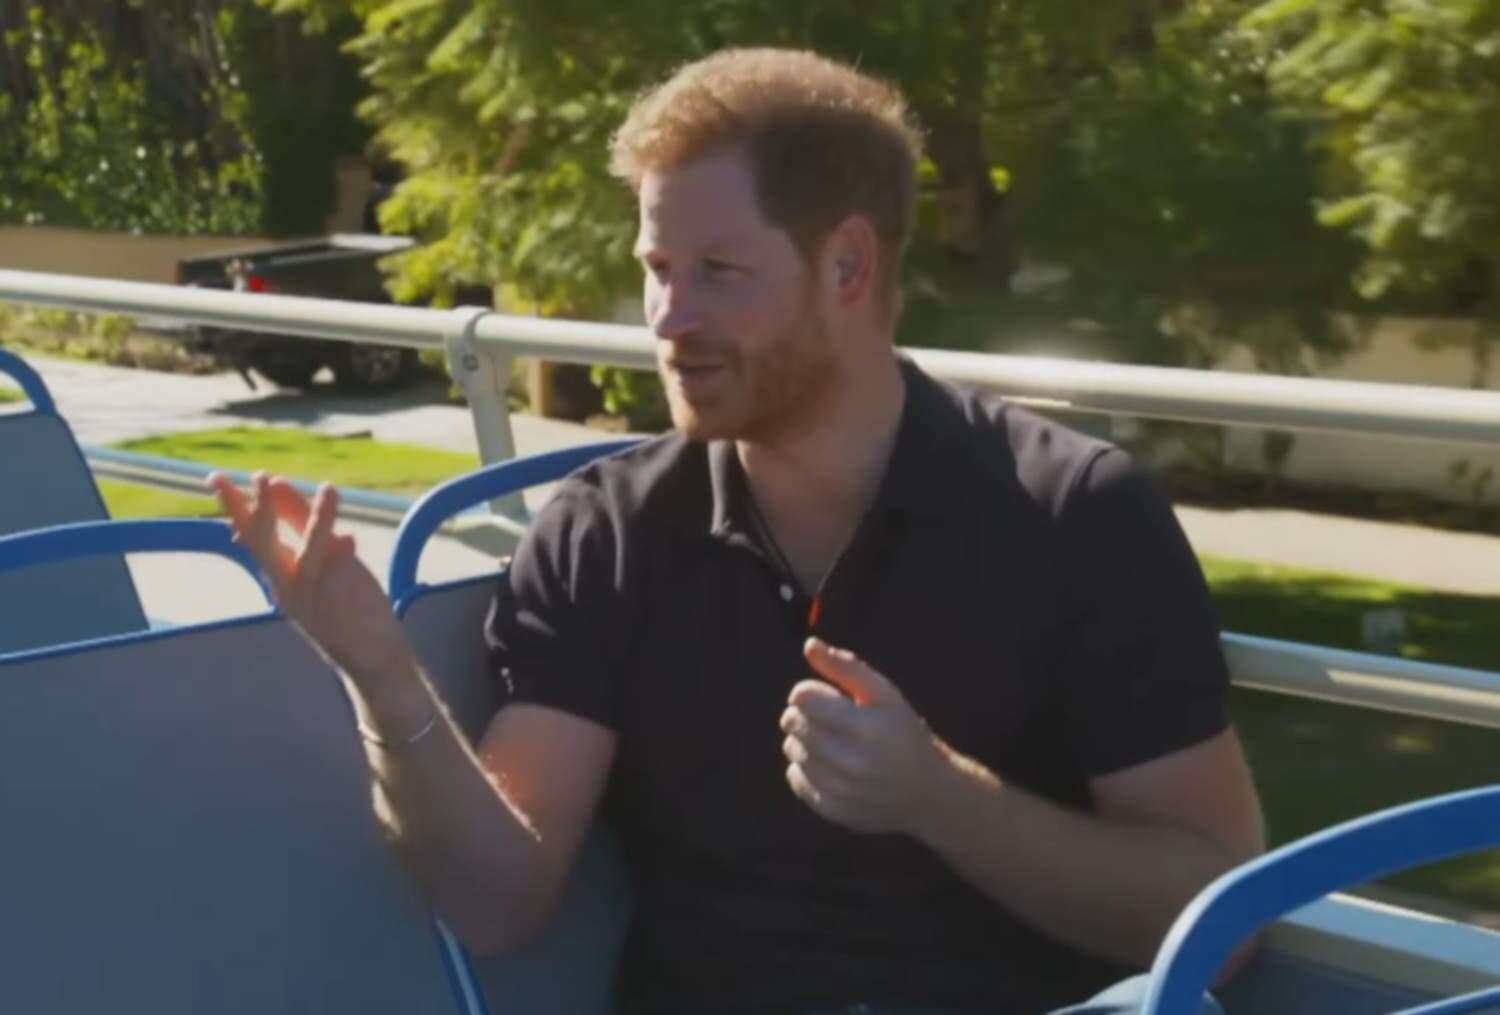 Prince Harry talks about stepping away from royal duties, says he did what any husband & father would have done